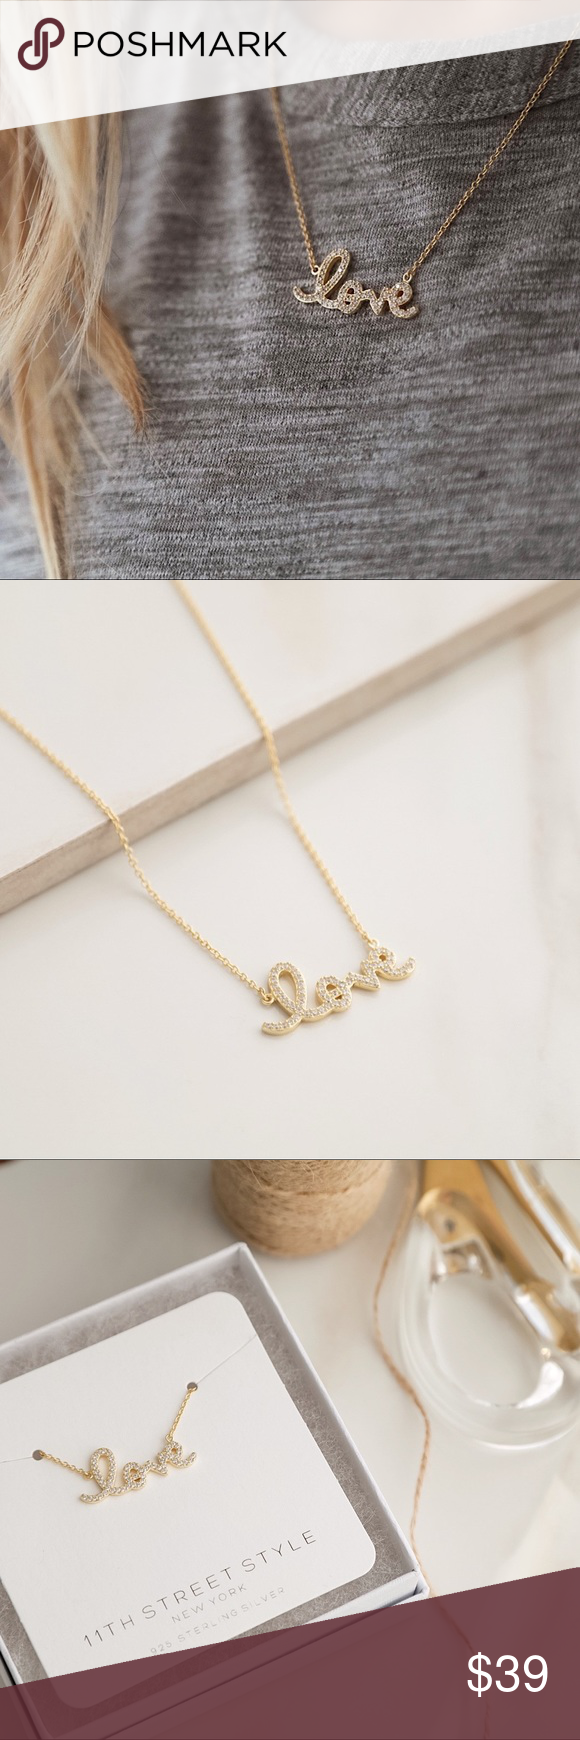 HN Jewels Lab Created Diamond Accent Stacked Two-Tone PlatedLove Paw Print Pendant 18 Chain 925